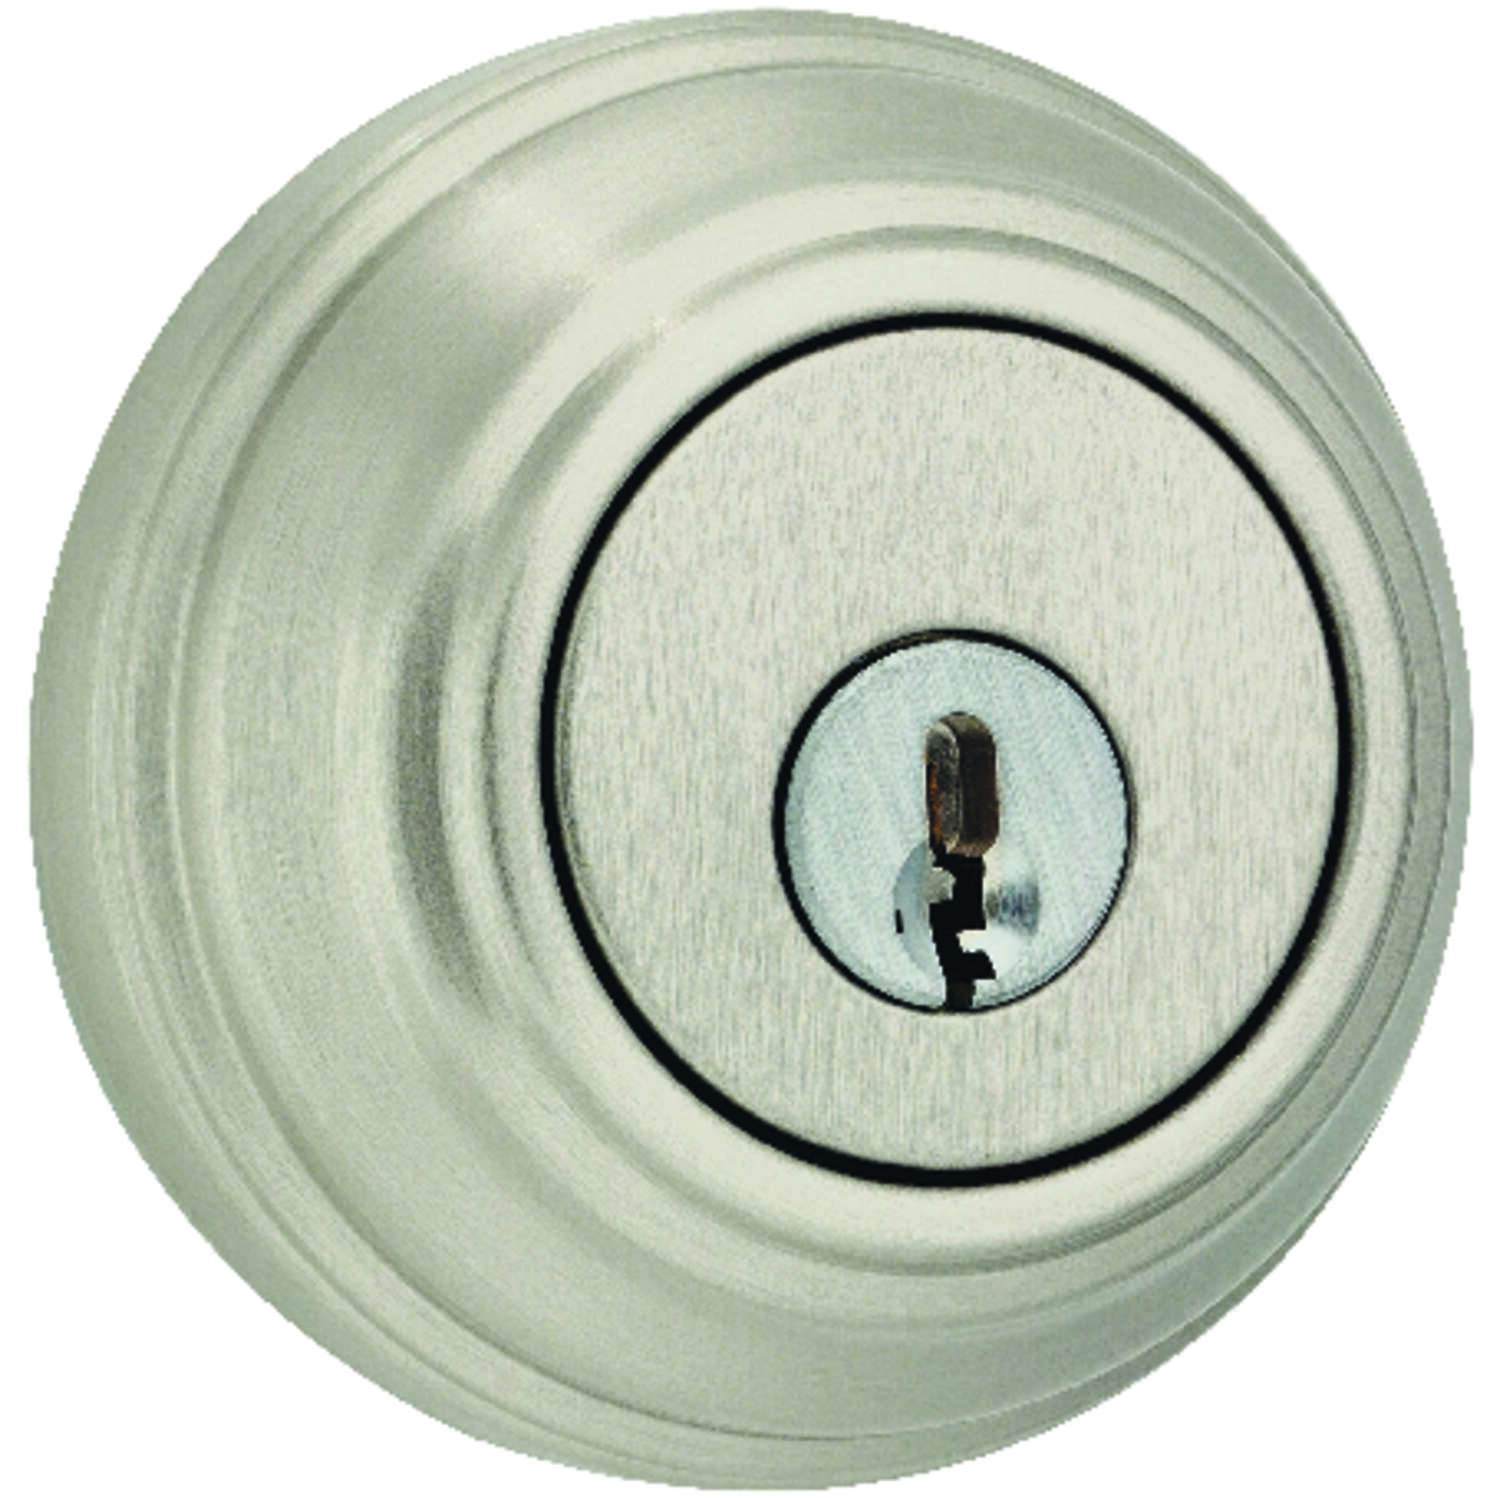 Weiser  Satin Nickel  Metal  Single Cylinder Smart Key Deadbolt